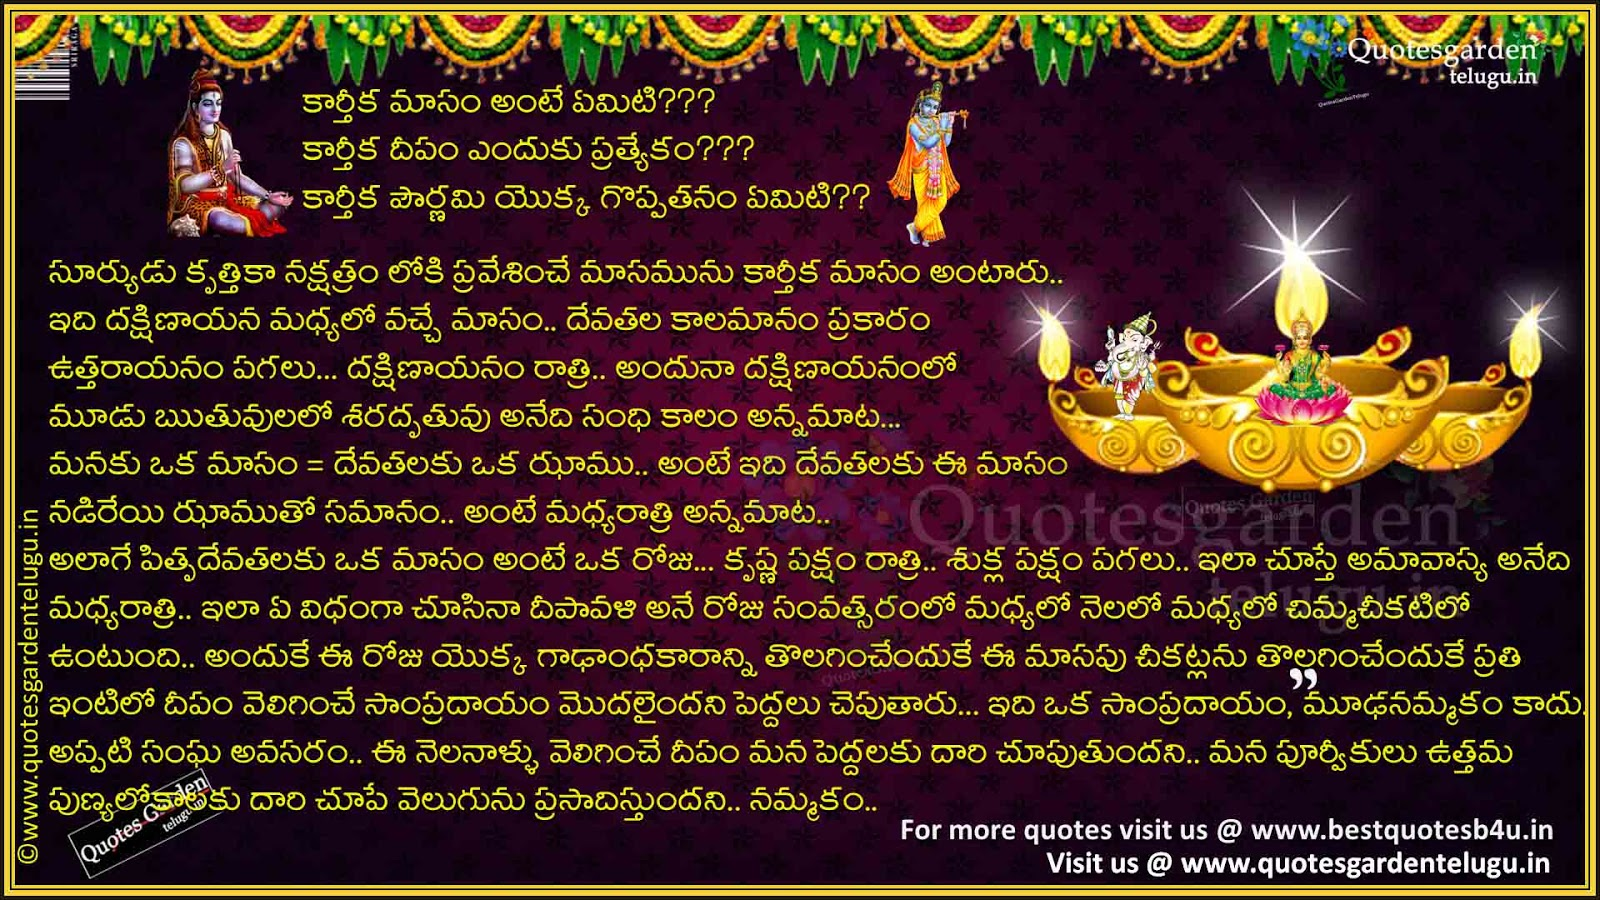 What Is The Importance Of Karithika Masam What Is Karthika Pournami Why This Festival Is Important Quotes Garden Telugu Telugu Quotes English Quotes Hindi Quotes